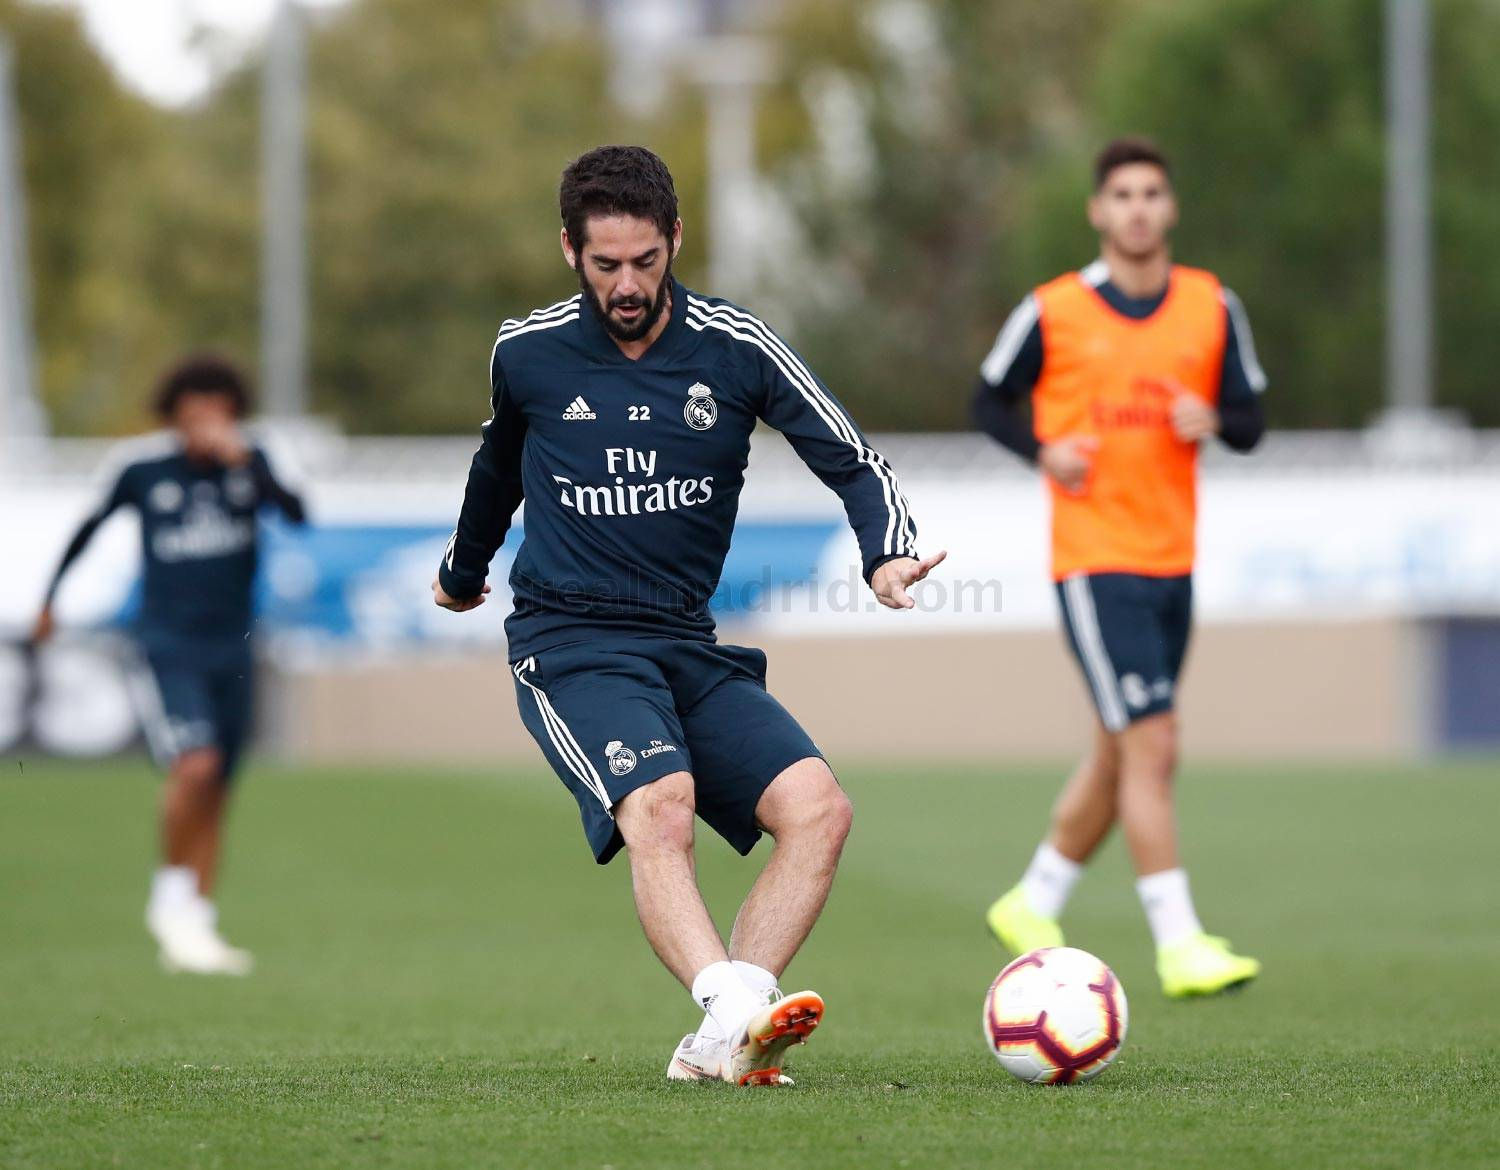 Real Madrid - Entrenamiento del Real Madrid - 19-10-2018